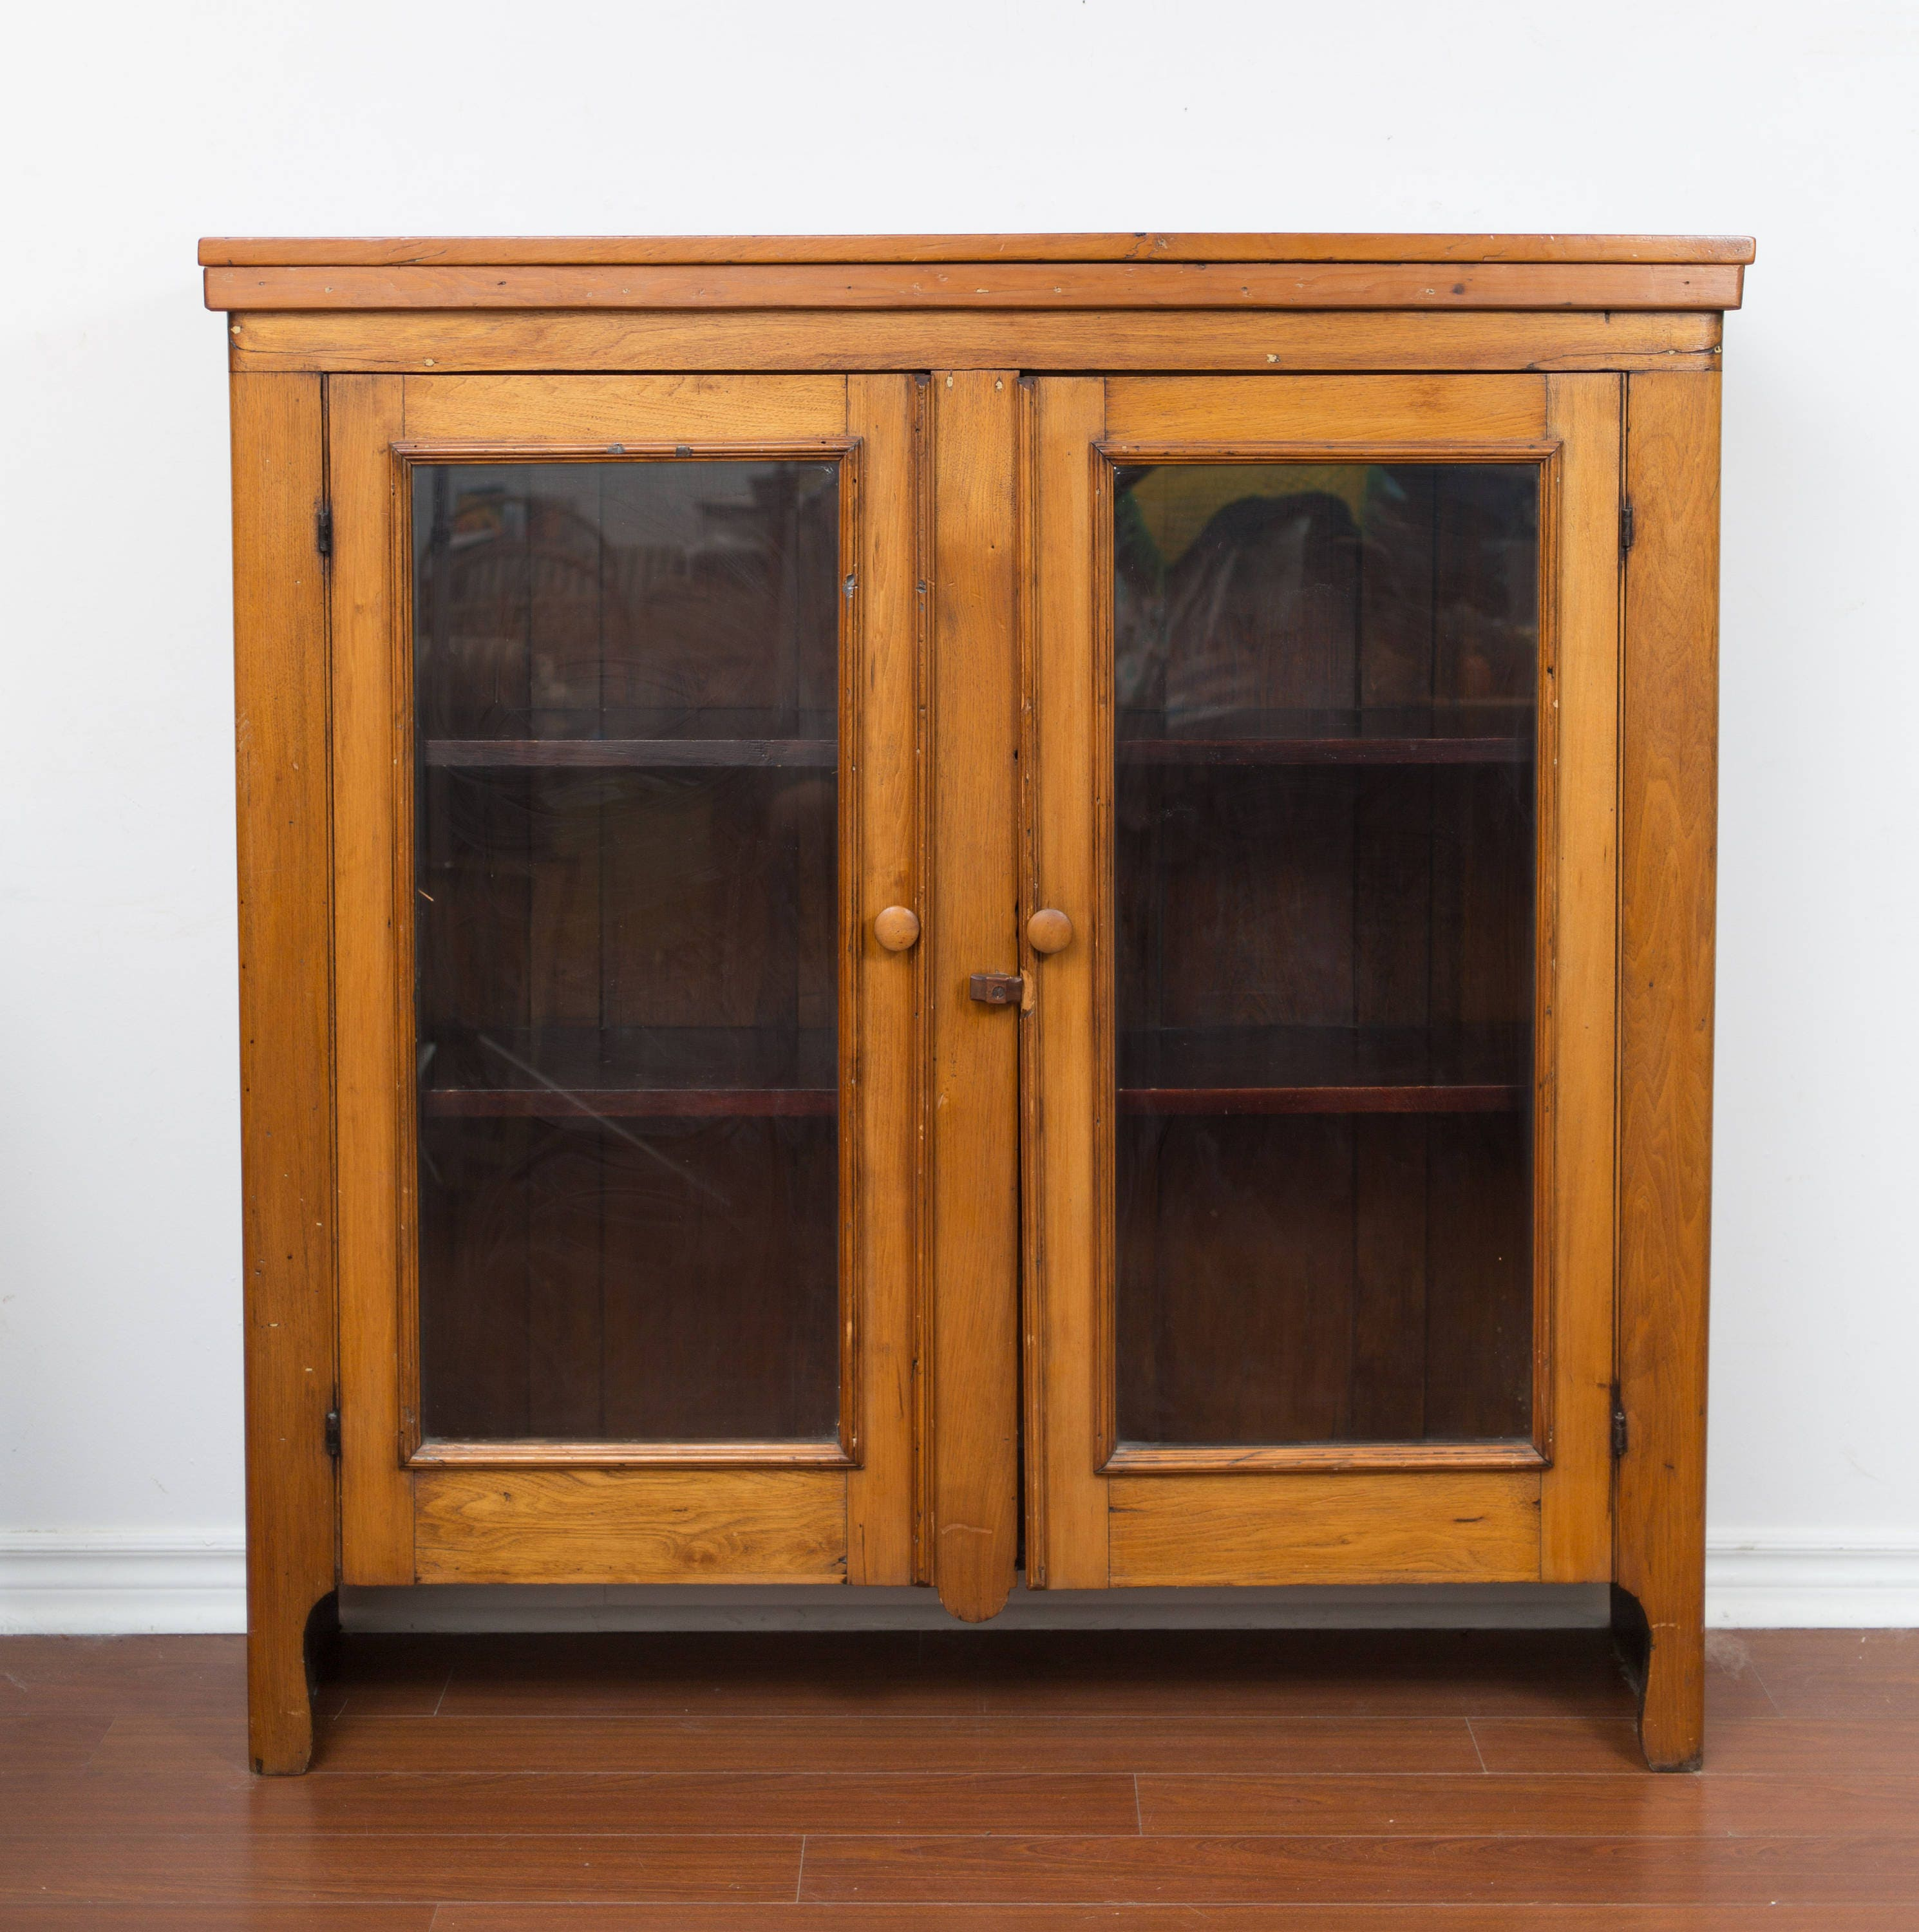 Antique Wood Cabinet Toronto Early 1900 S With Shelving And Glass Doors Primitive Canadiana Rustic Home Decor